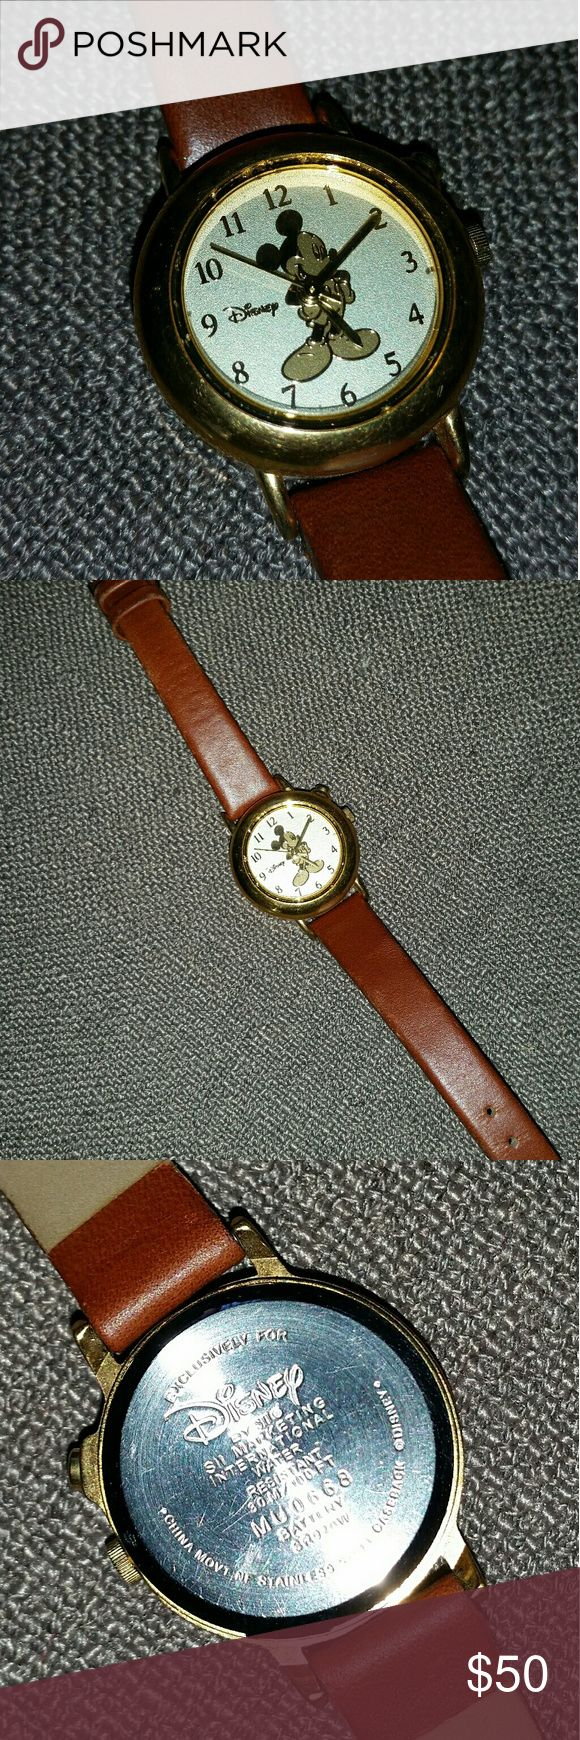 Authentic Disney Mickey Mouse Watch Adorable, yet dressy, woman's gold-tone Mickey Mouse Watch with brown leather band. Like new, it's distinctly Disney! It does need a new battery. I believe it plays the Mickey Mouse theme song when the top button is pressed. Disney Accessories Watches